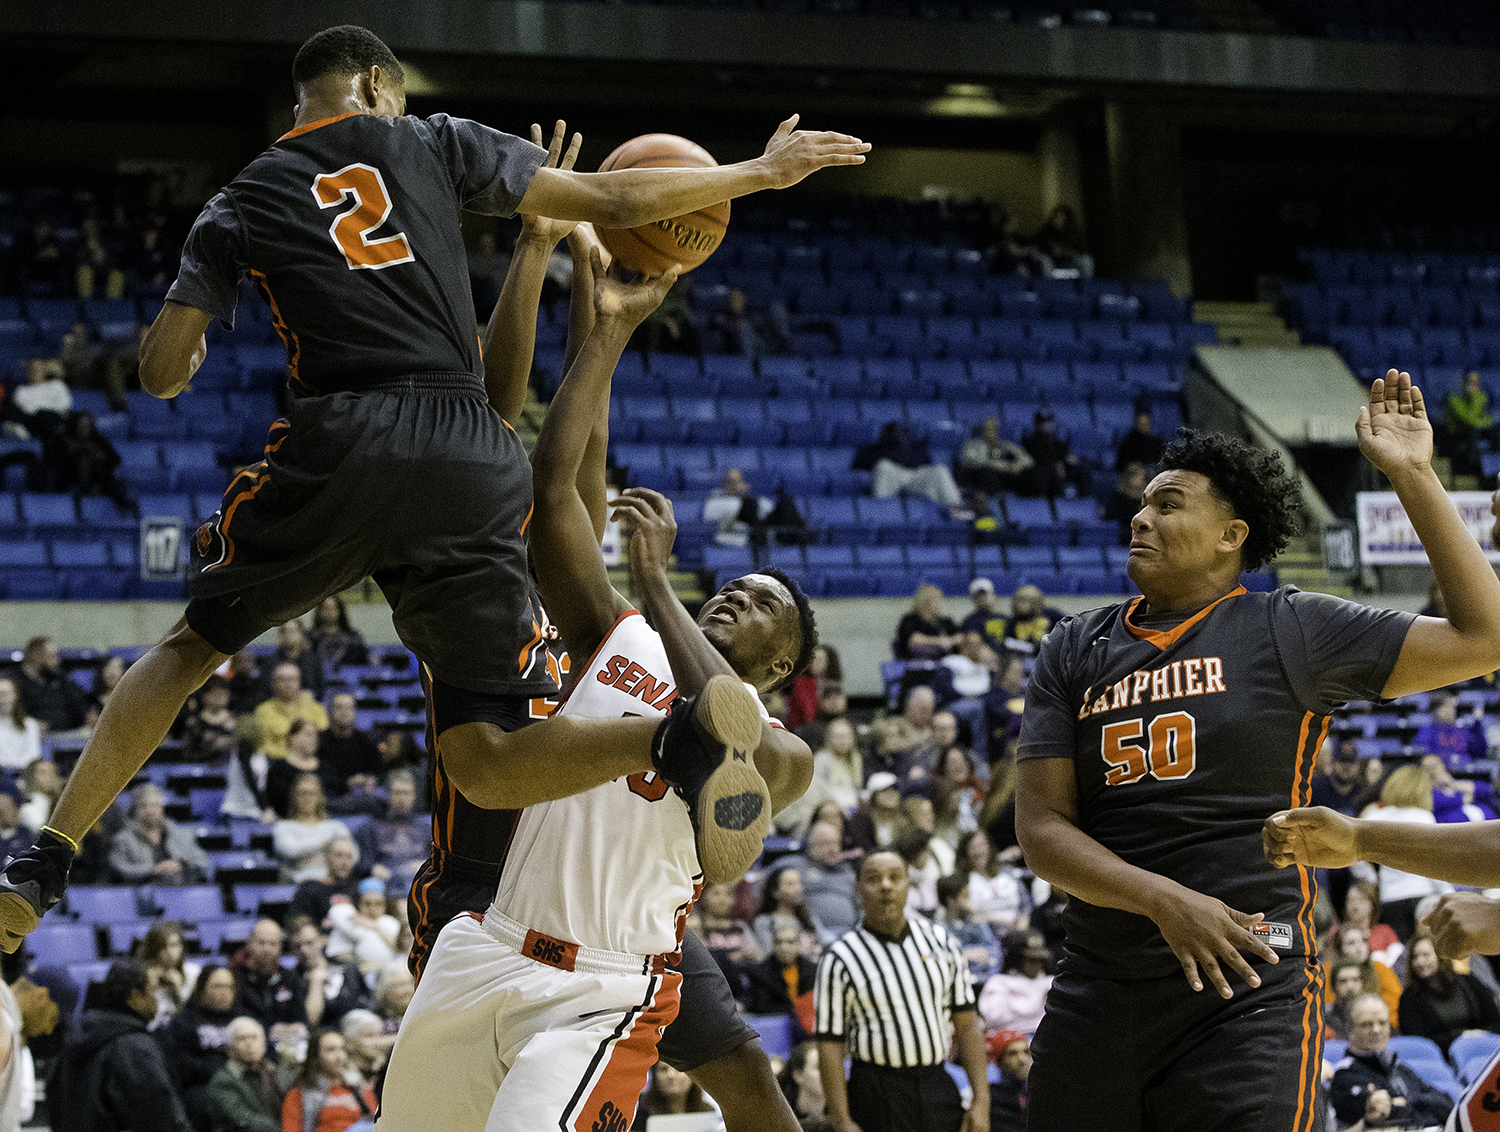 Springfield's Ananise Mackey tries to get a shot off under pressure from Lanphier's Cardell McGee during the Boys City Tournament at the Bank of Springfield Center Thursday, Jan. 18, 2018. [Ted Schurter/The State Journal-Register]